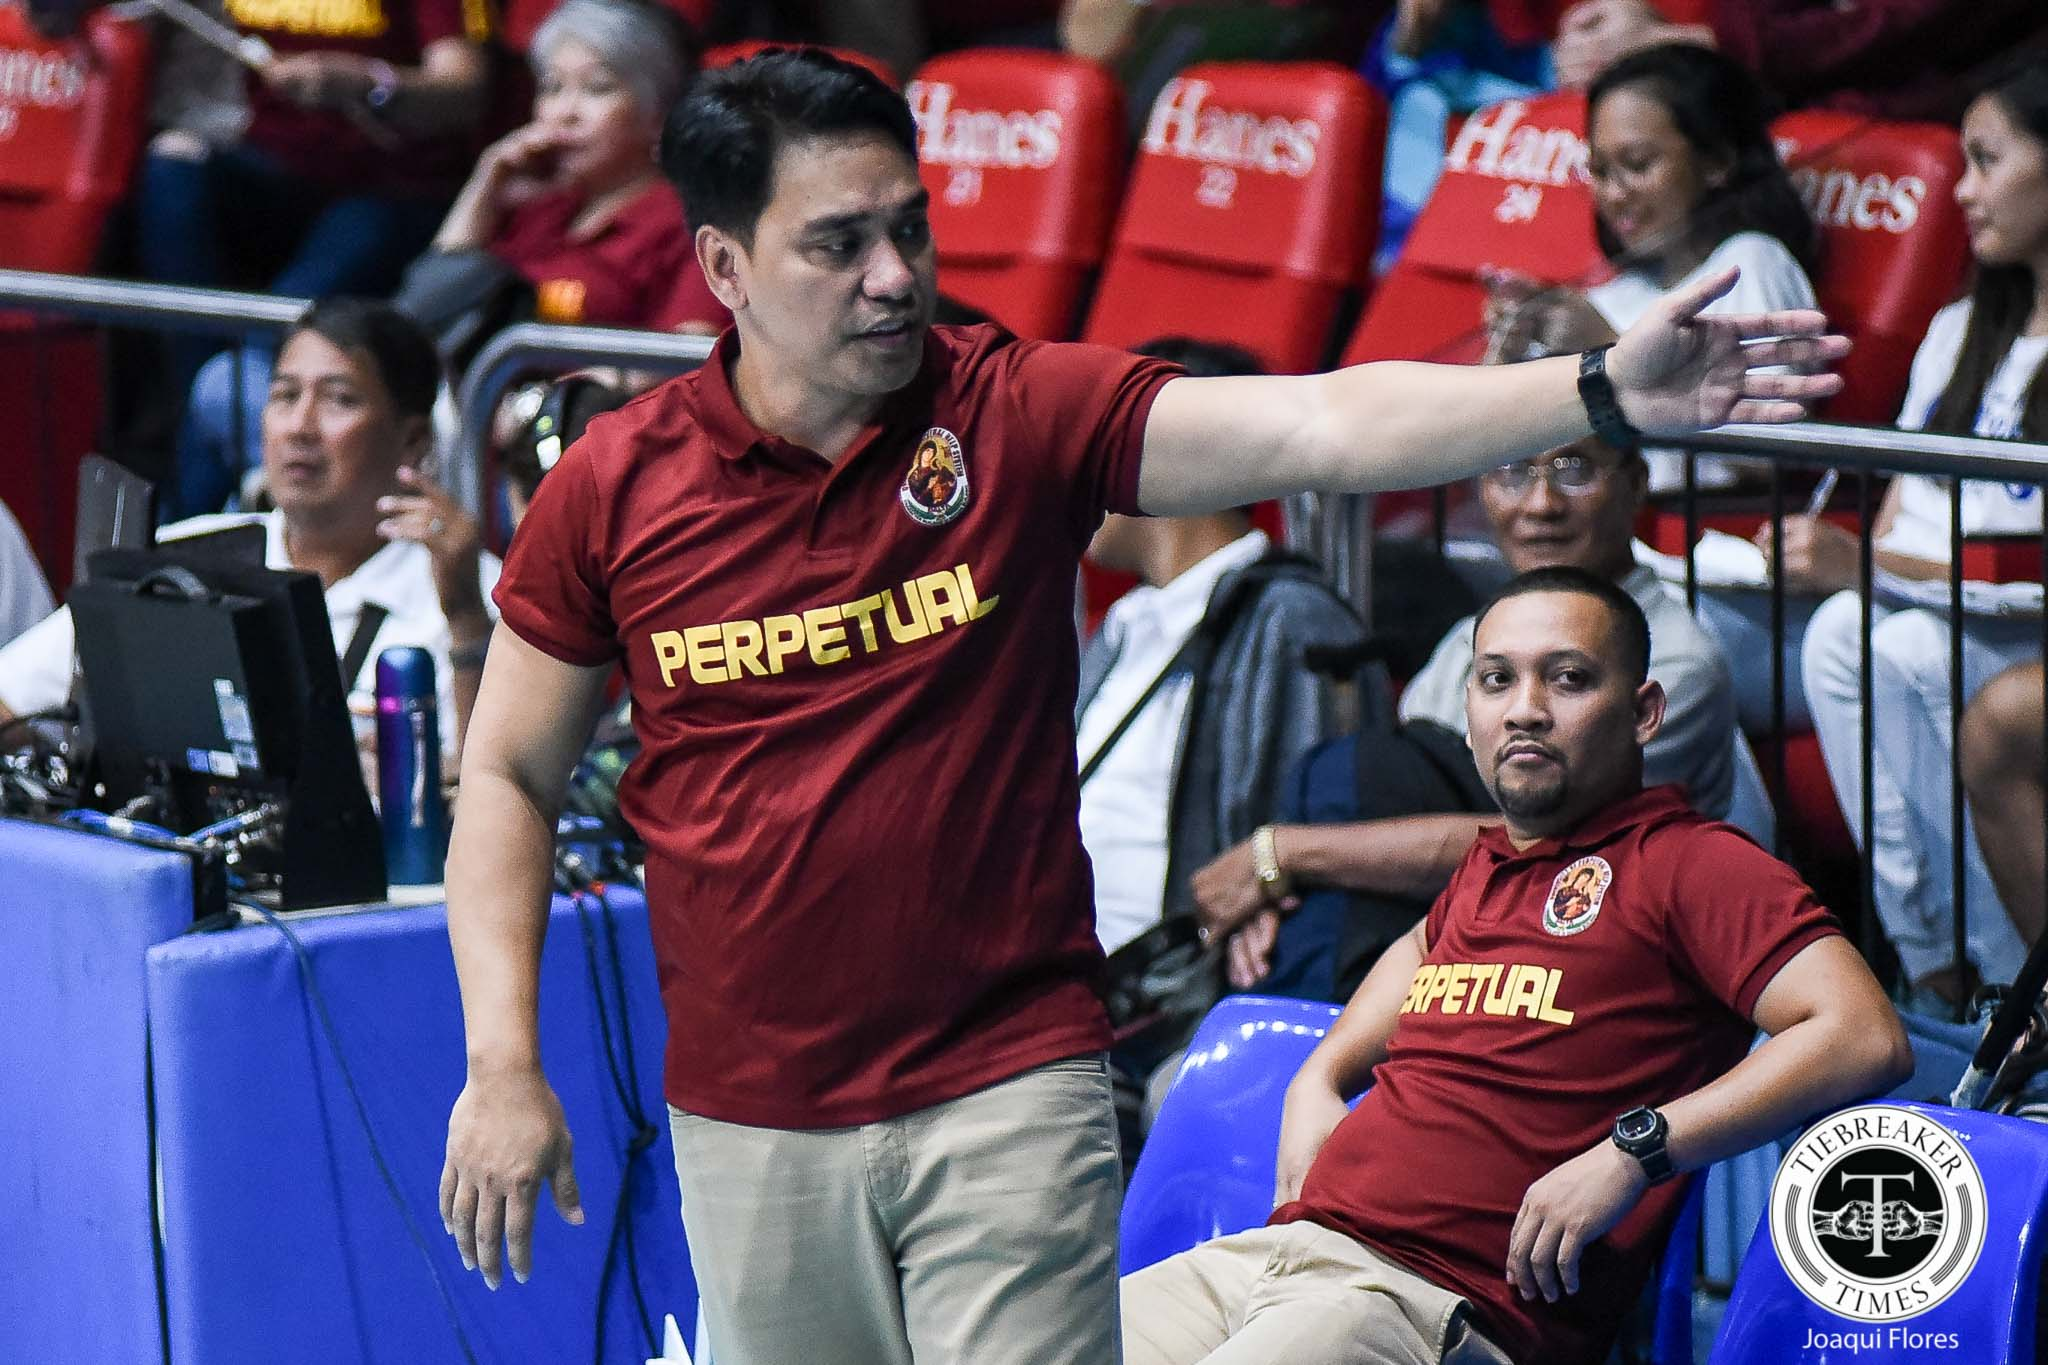 Tiebreaker Times Only fitting for Perpetual's season to end in do-or-die match, says Macky Cariño NCAA News UPHSD Volleyball  Perpetual Women's Volleyball NCAA Season 94 Women's Volleyball NCAA Season 94 Macky Cariño